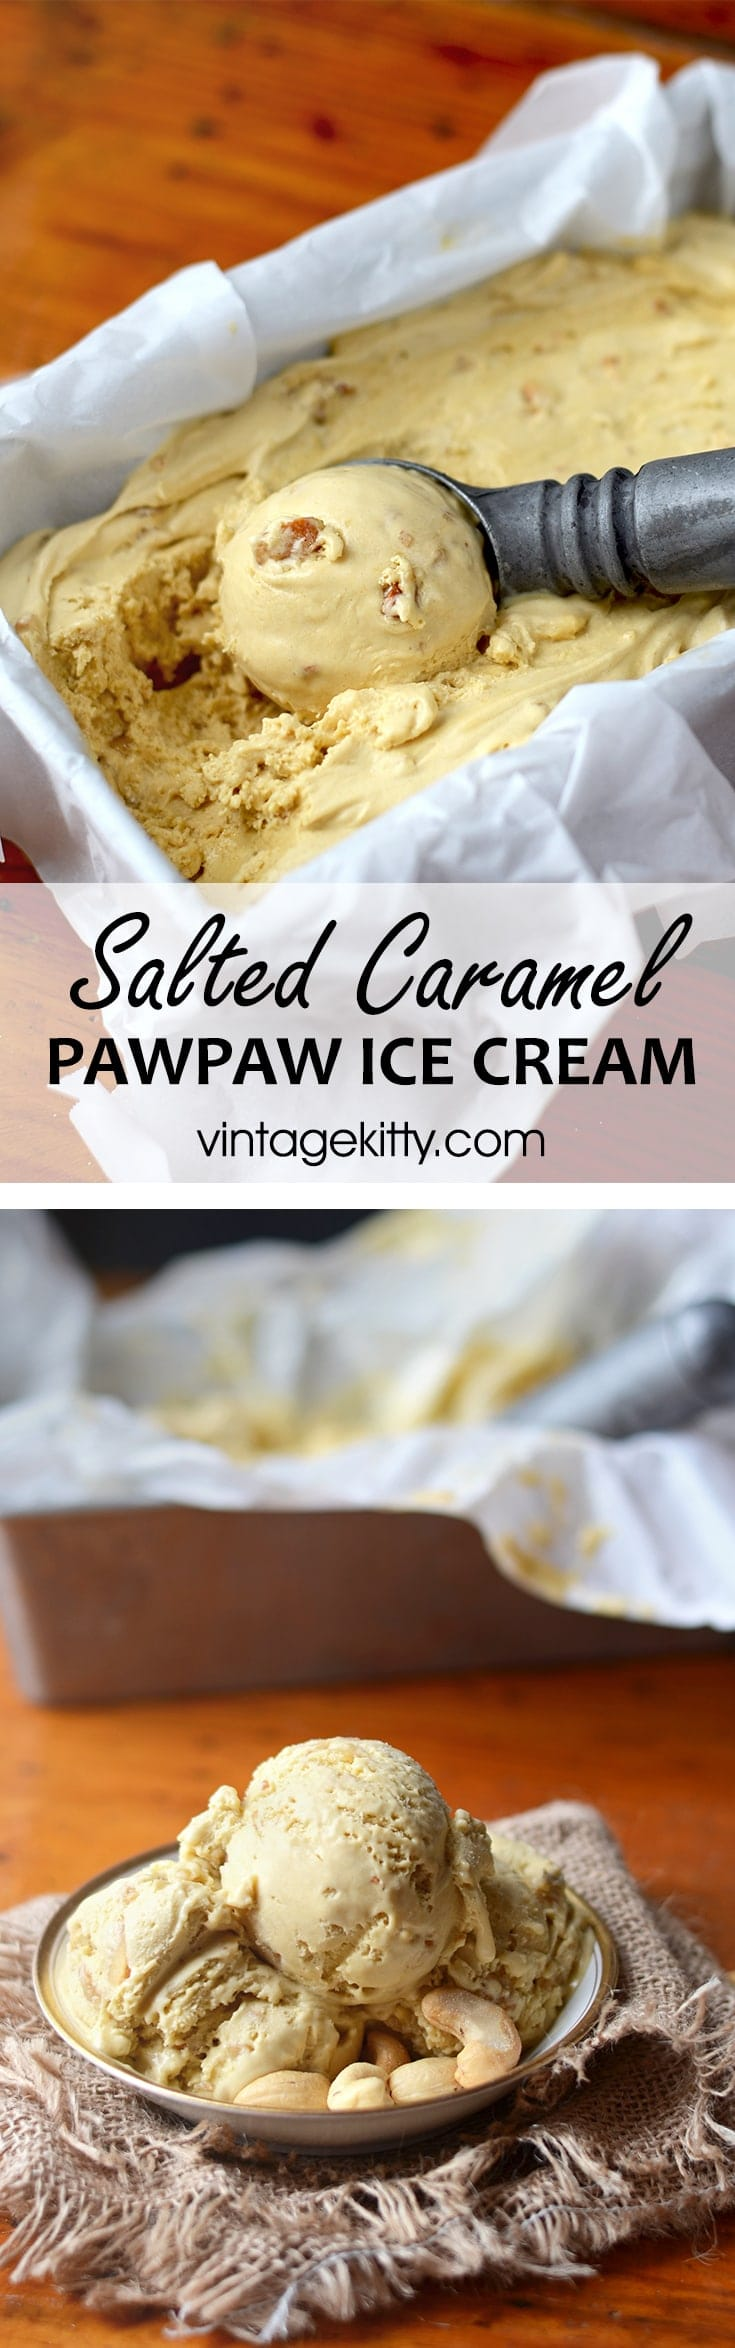 This delectable ice cream scratches all your sinful itches. It's creamy, crunchy, salty, sweet with a hint of banana mango flavor from exotic pawpaw fruit.